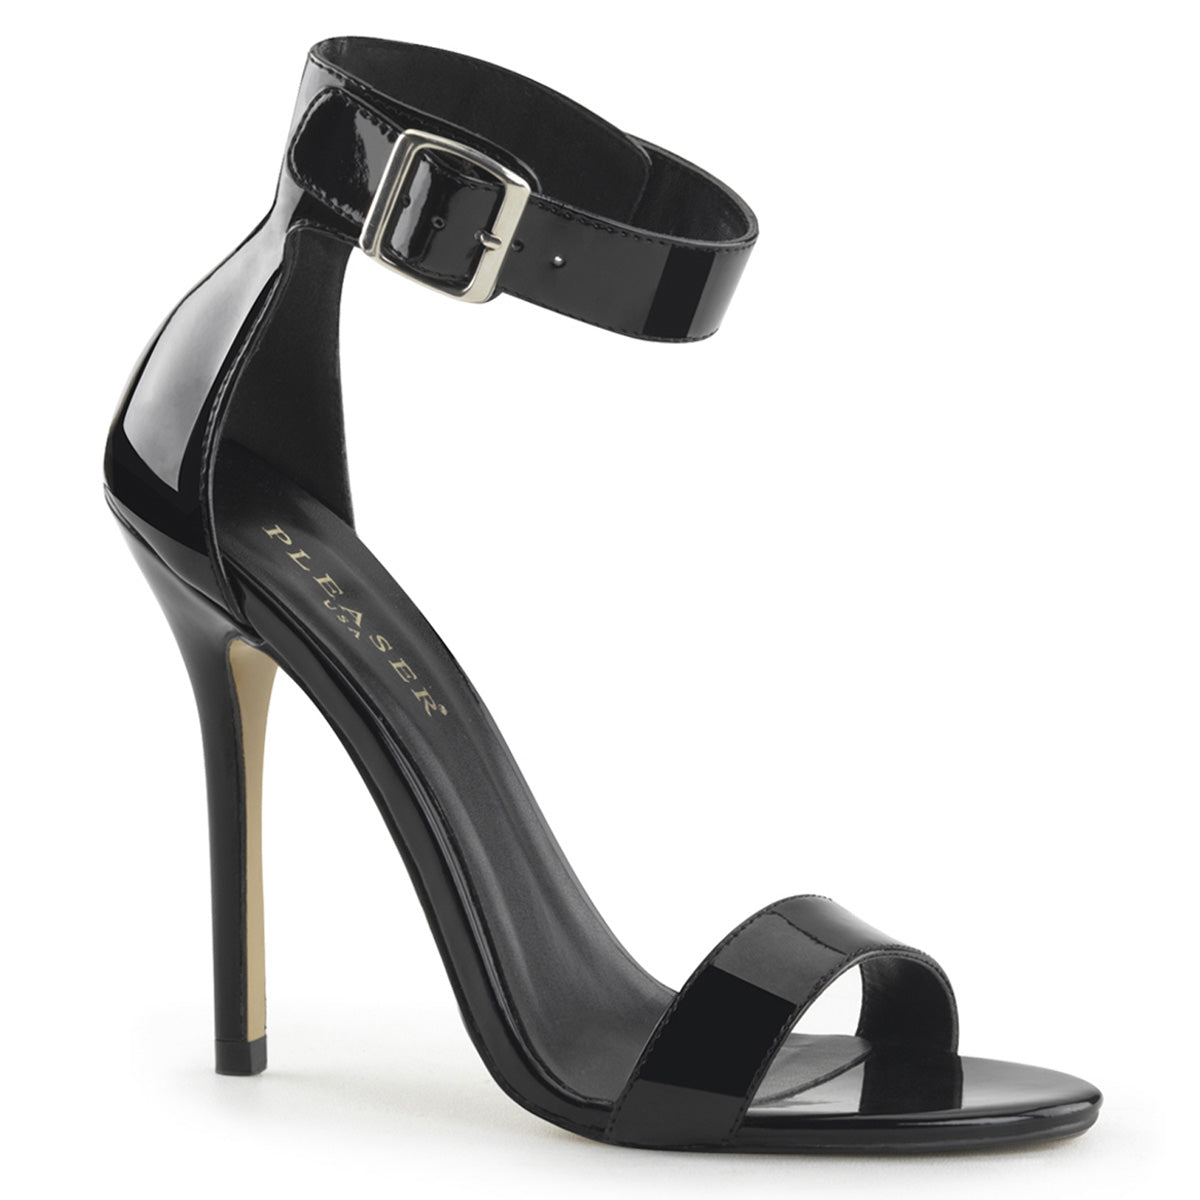 "5"" Heel, Closed Back Sandal W/ Buckled Ankle Strap"